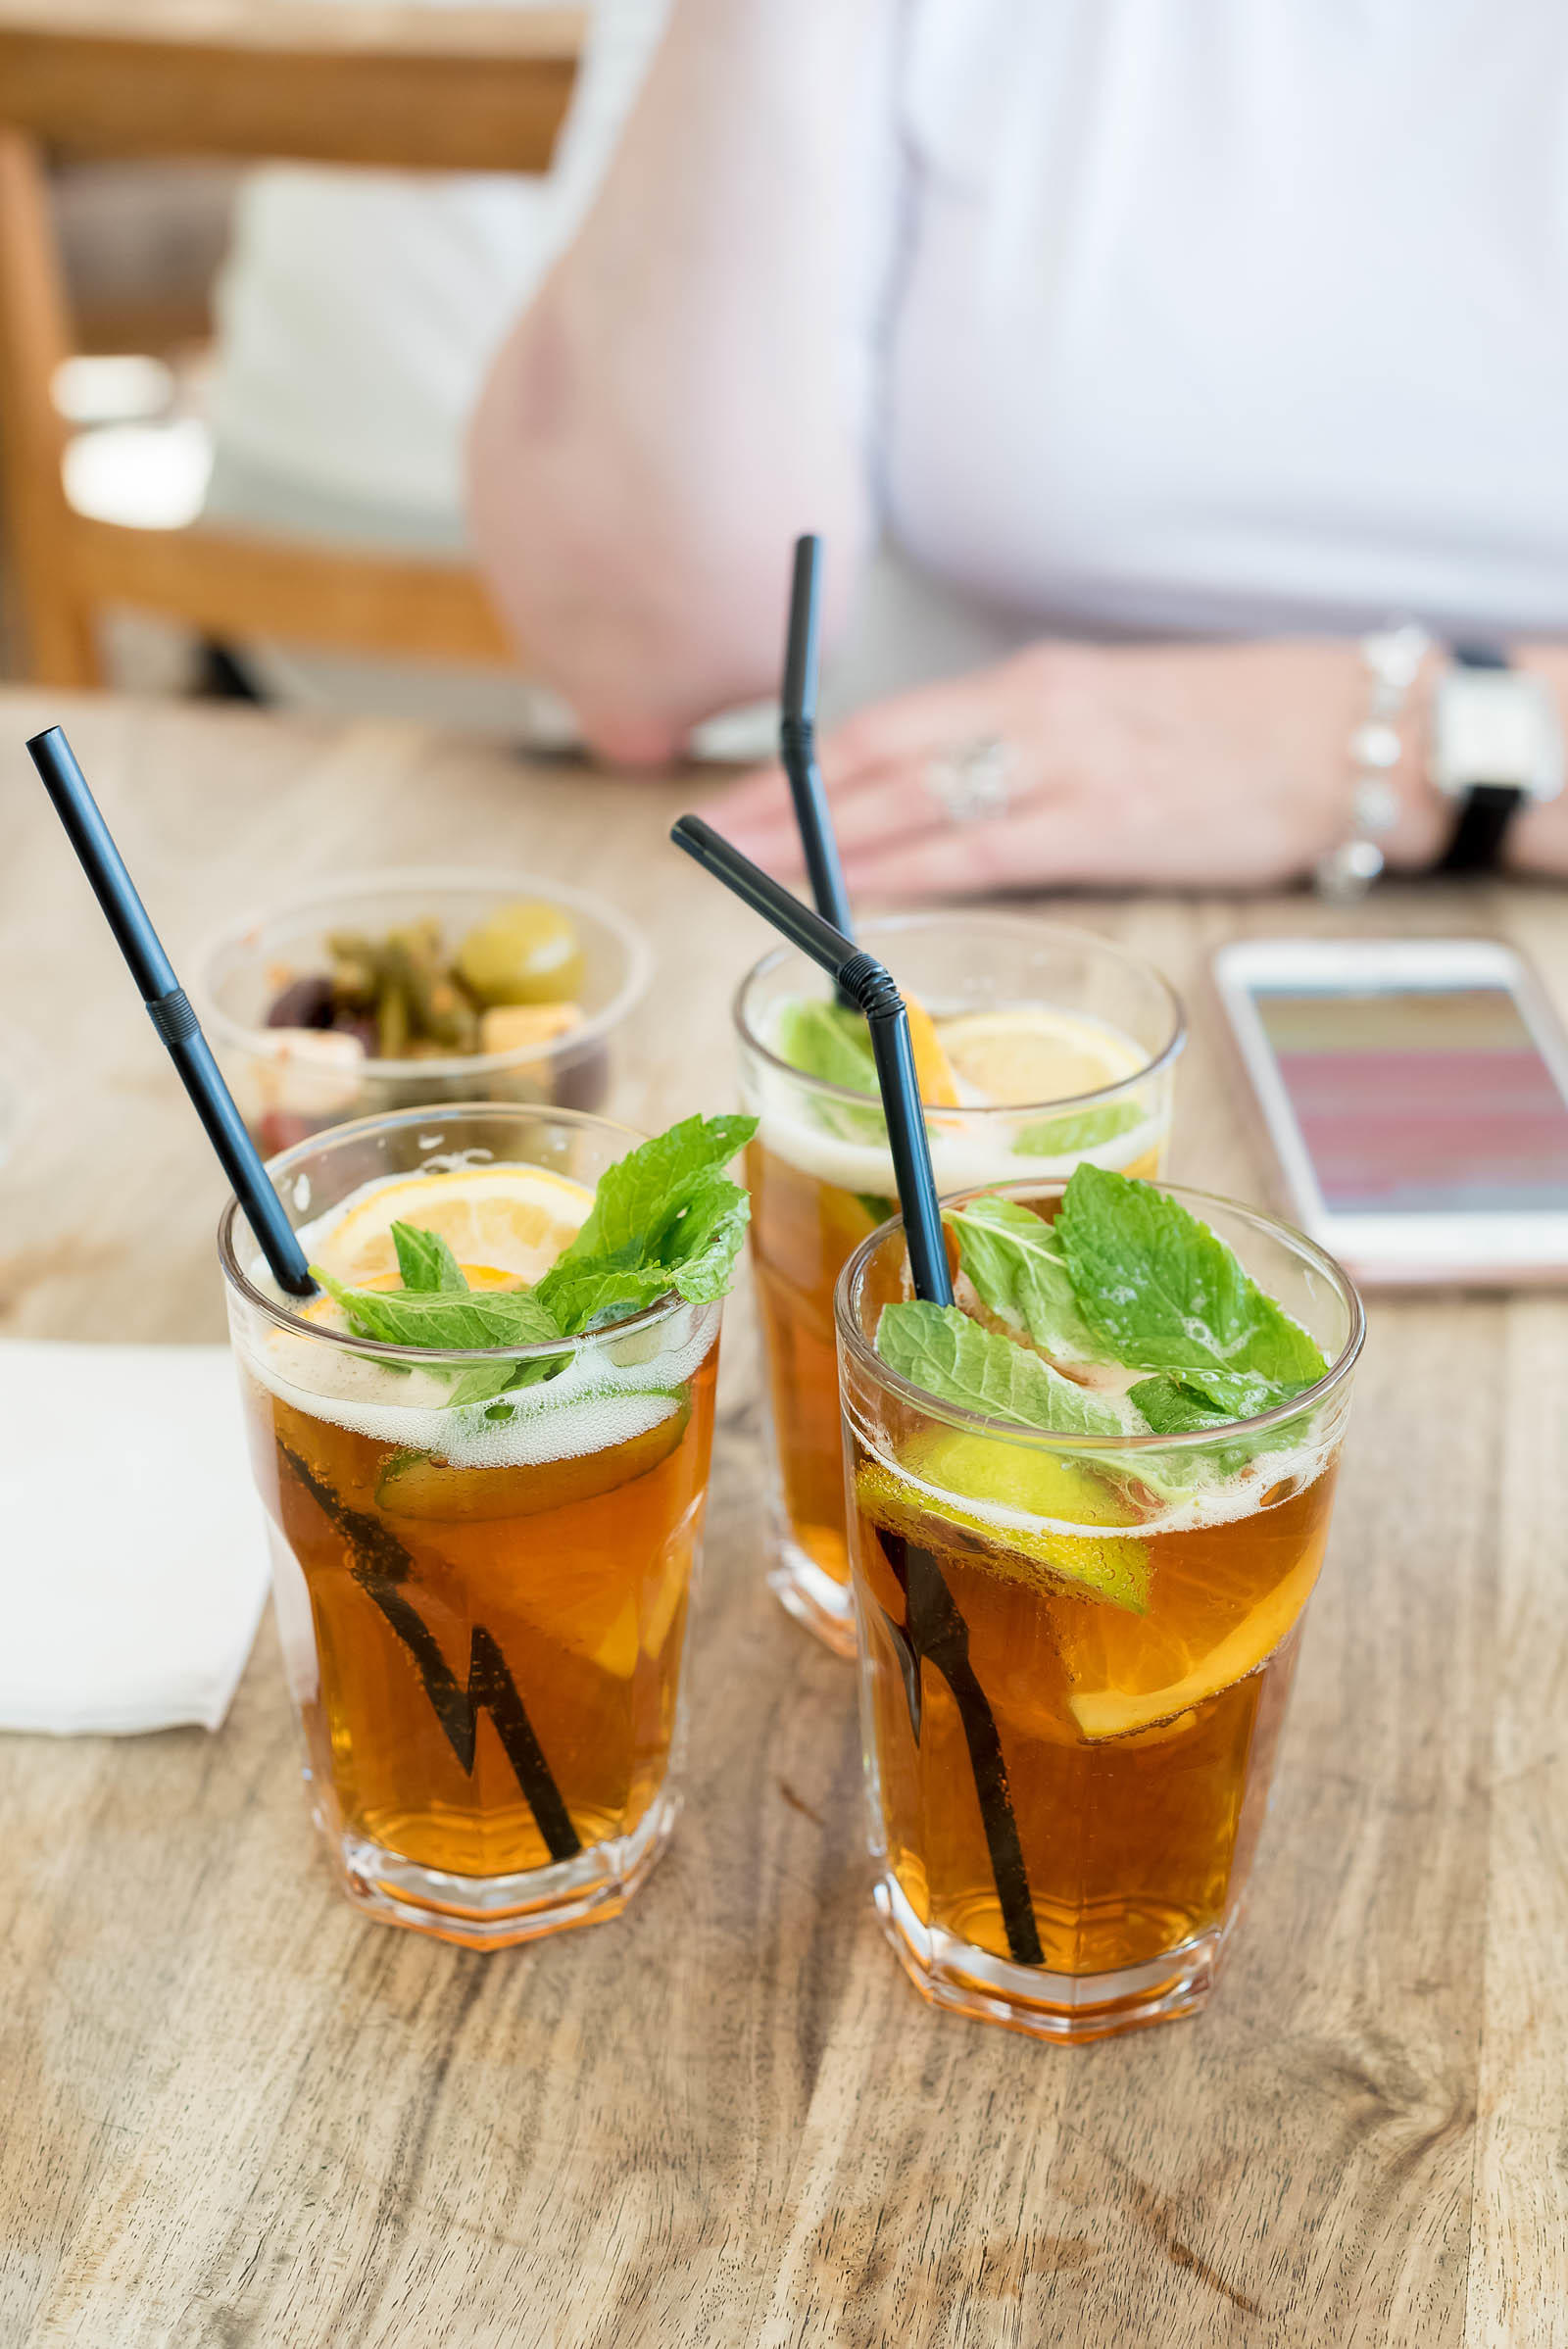 Serpentine Cafe Pimm's Cup